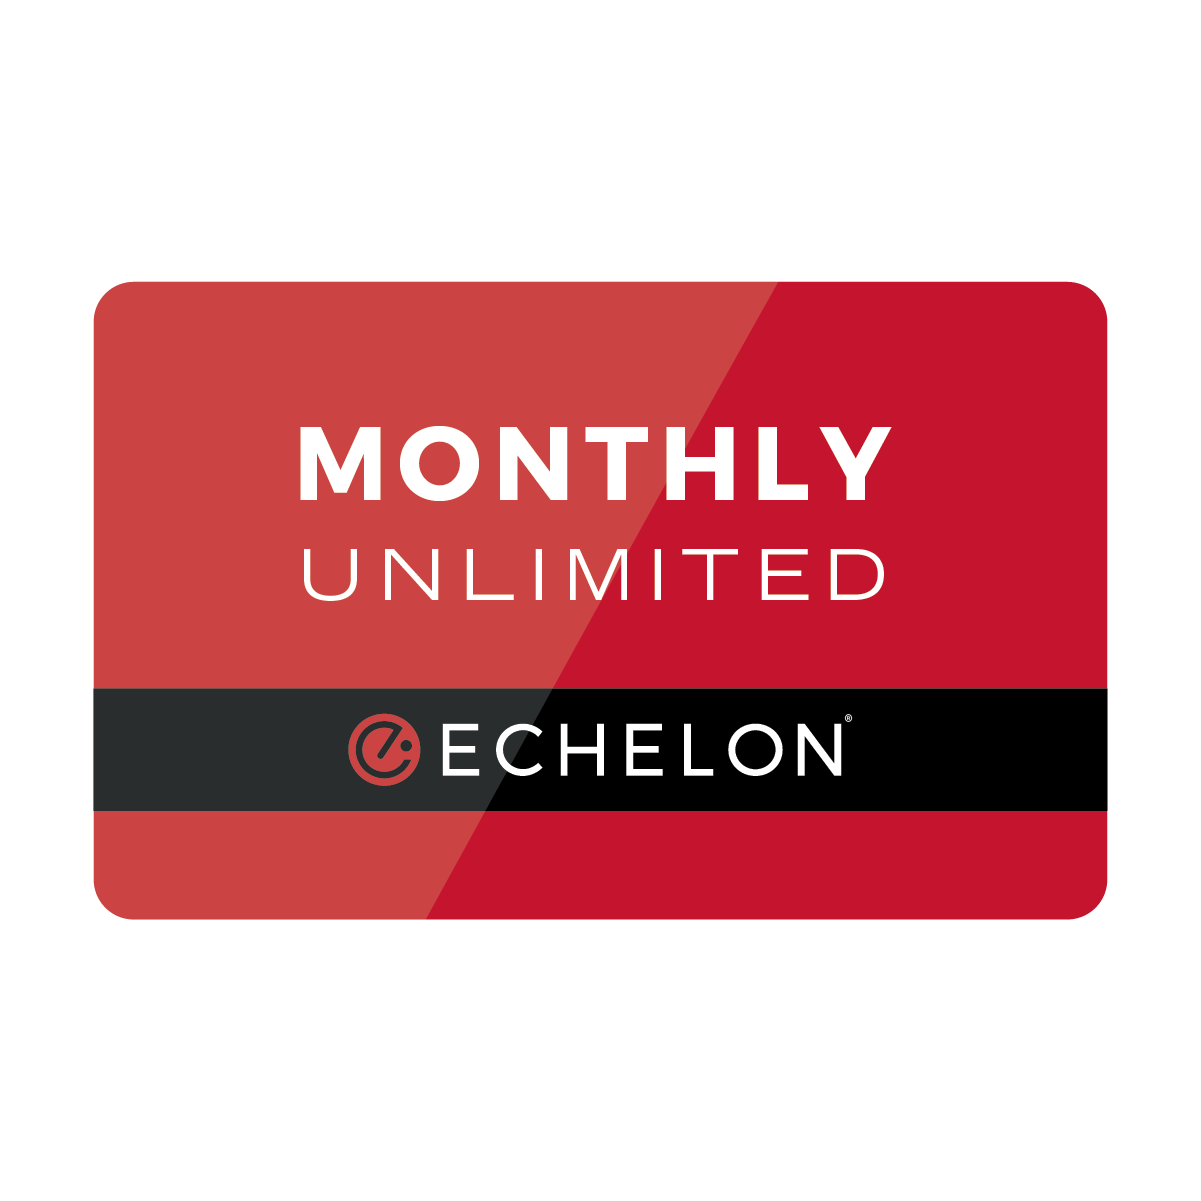 Echelon FitPass UNLIMITED Access - Monthly Plan